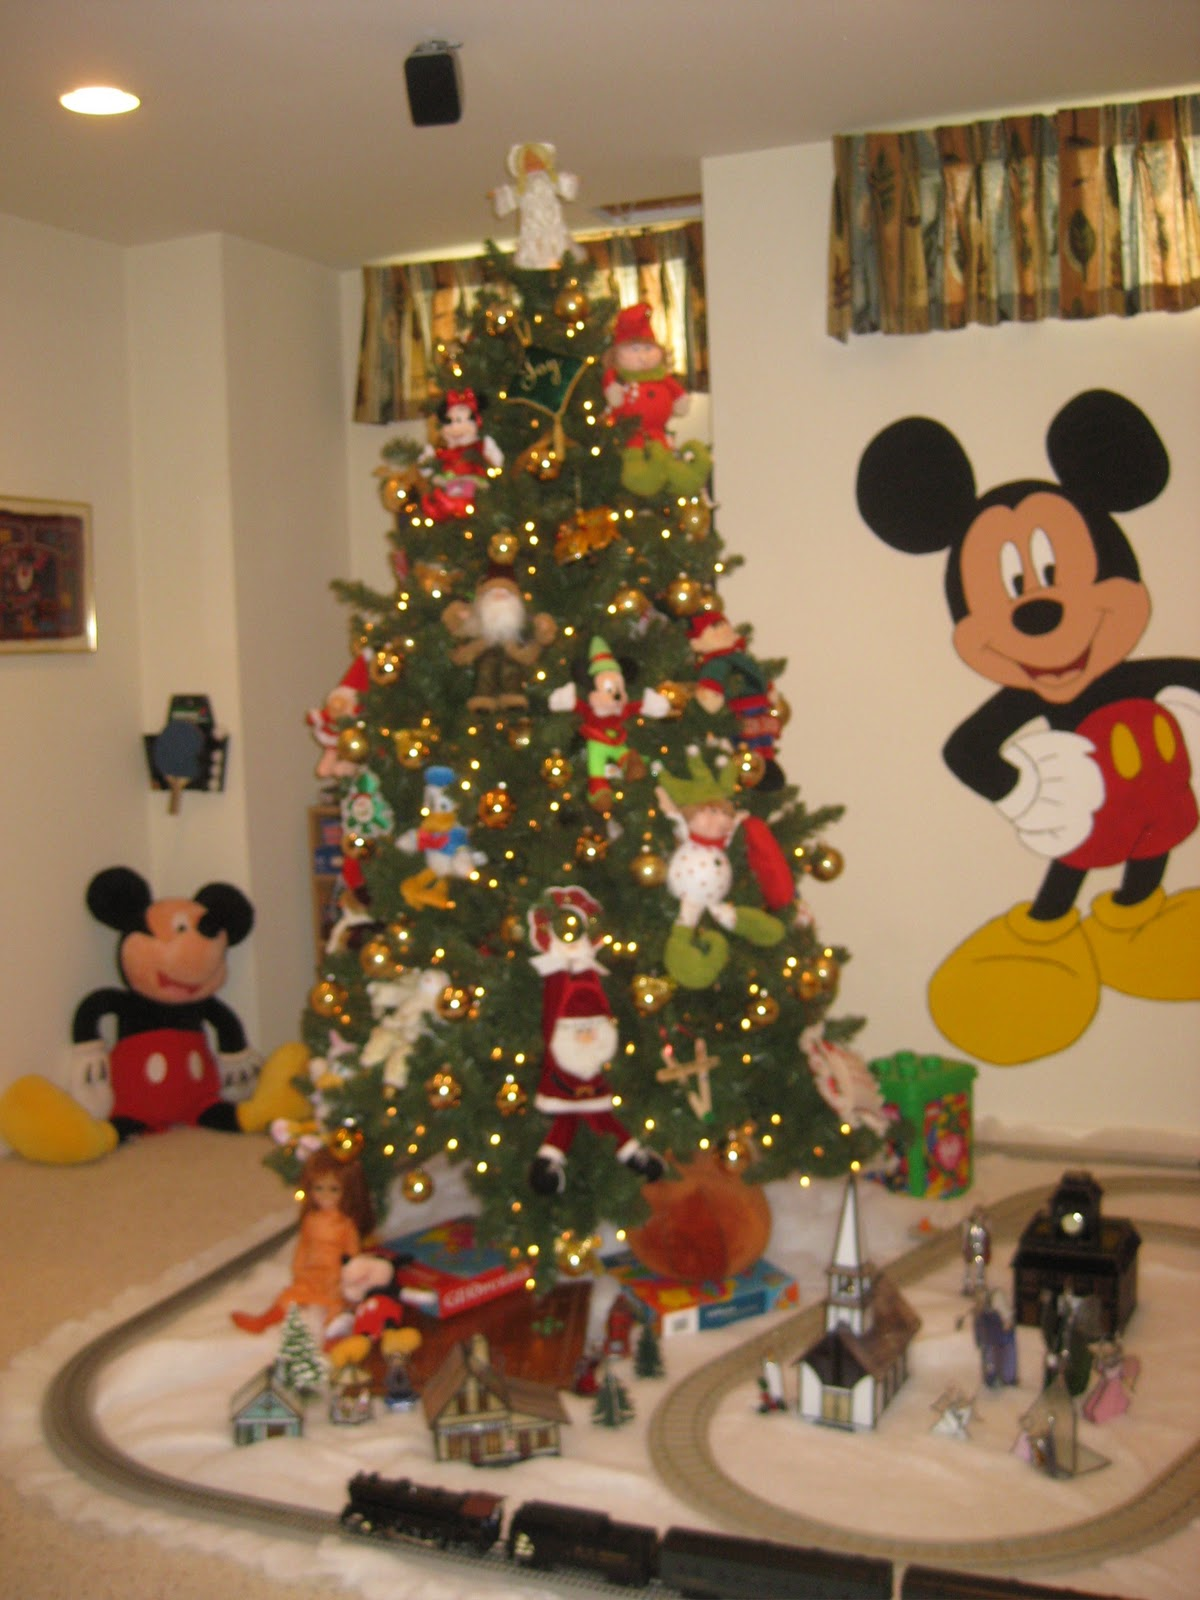 45 amazing disney christmas tree decorations ideas decoration love. Black Bedroom Furniture Sets. Home Design Ideas